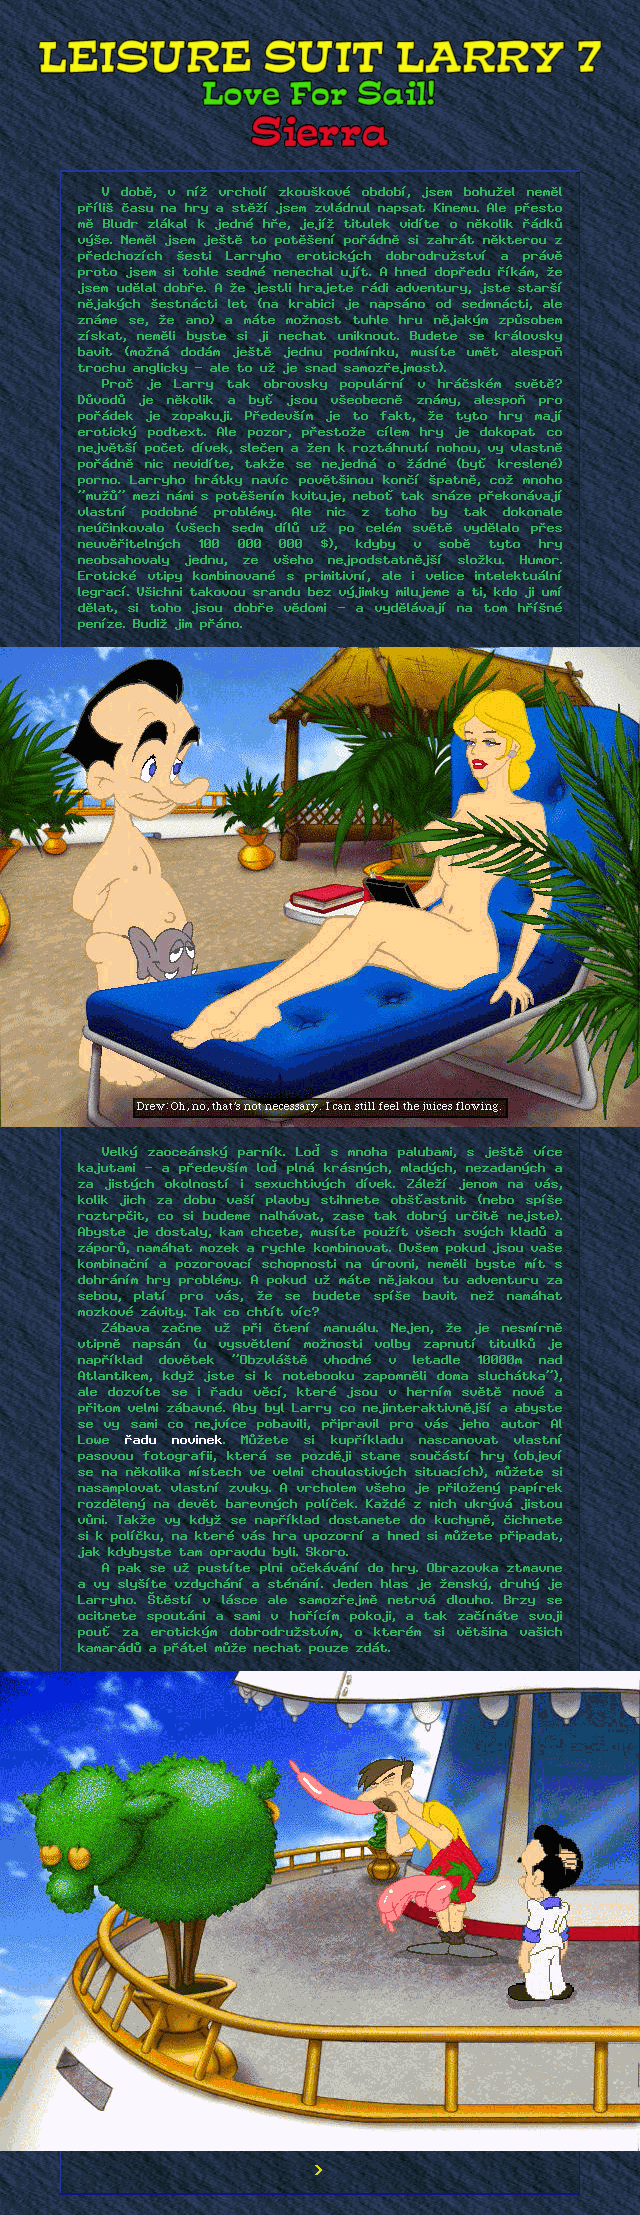 Leisure Suit Larry 7: Love for Sail! (1/2)